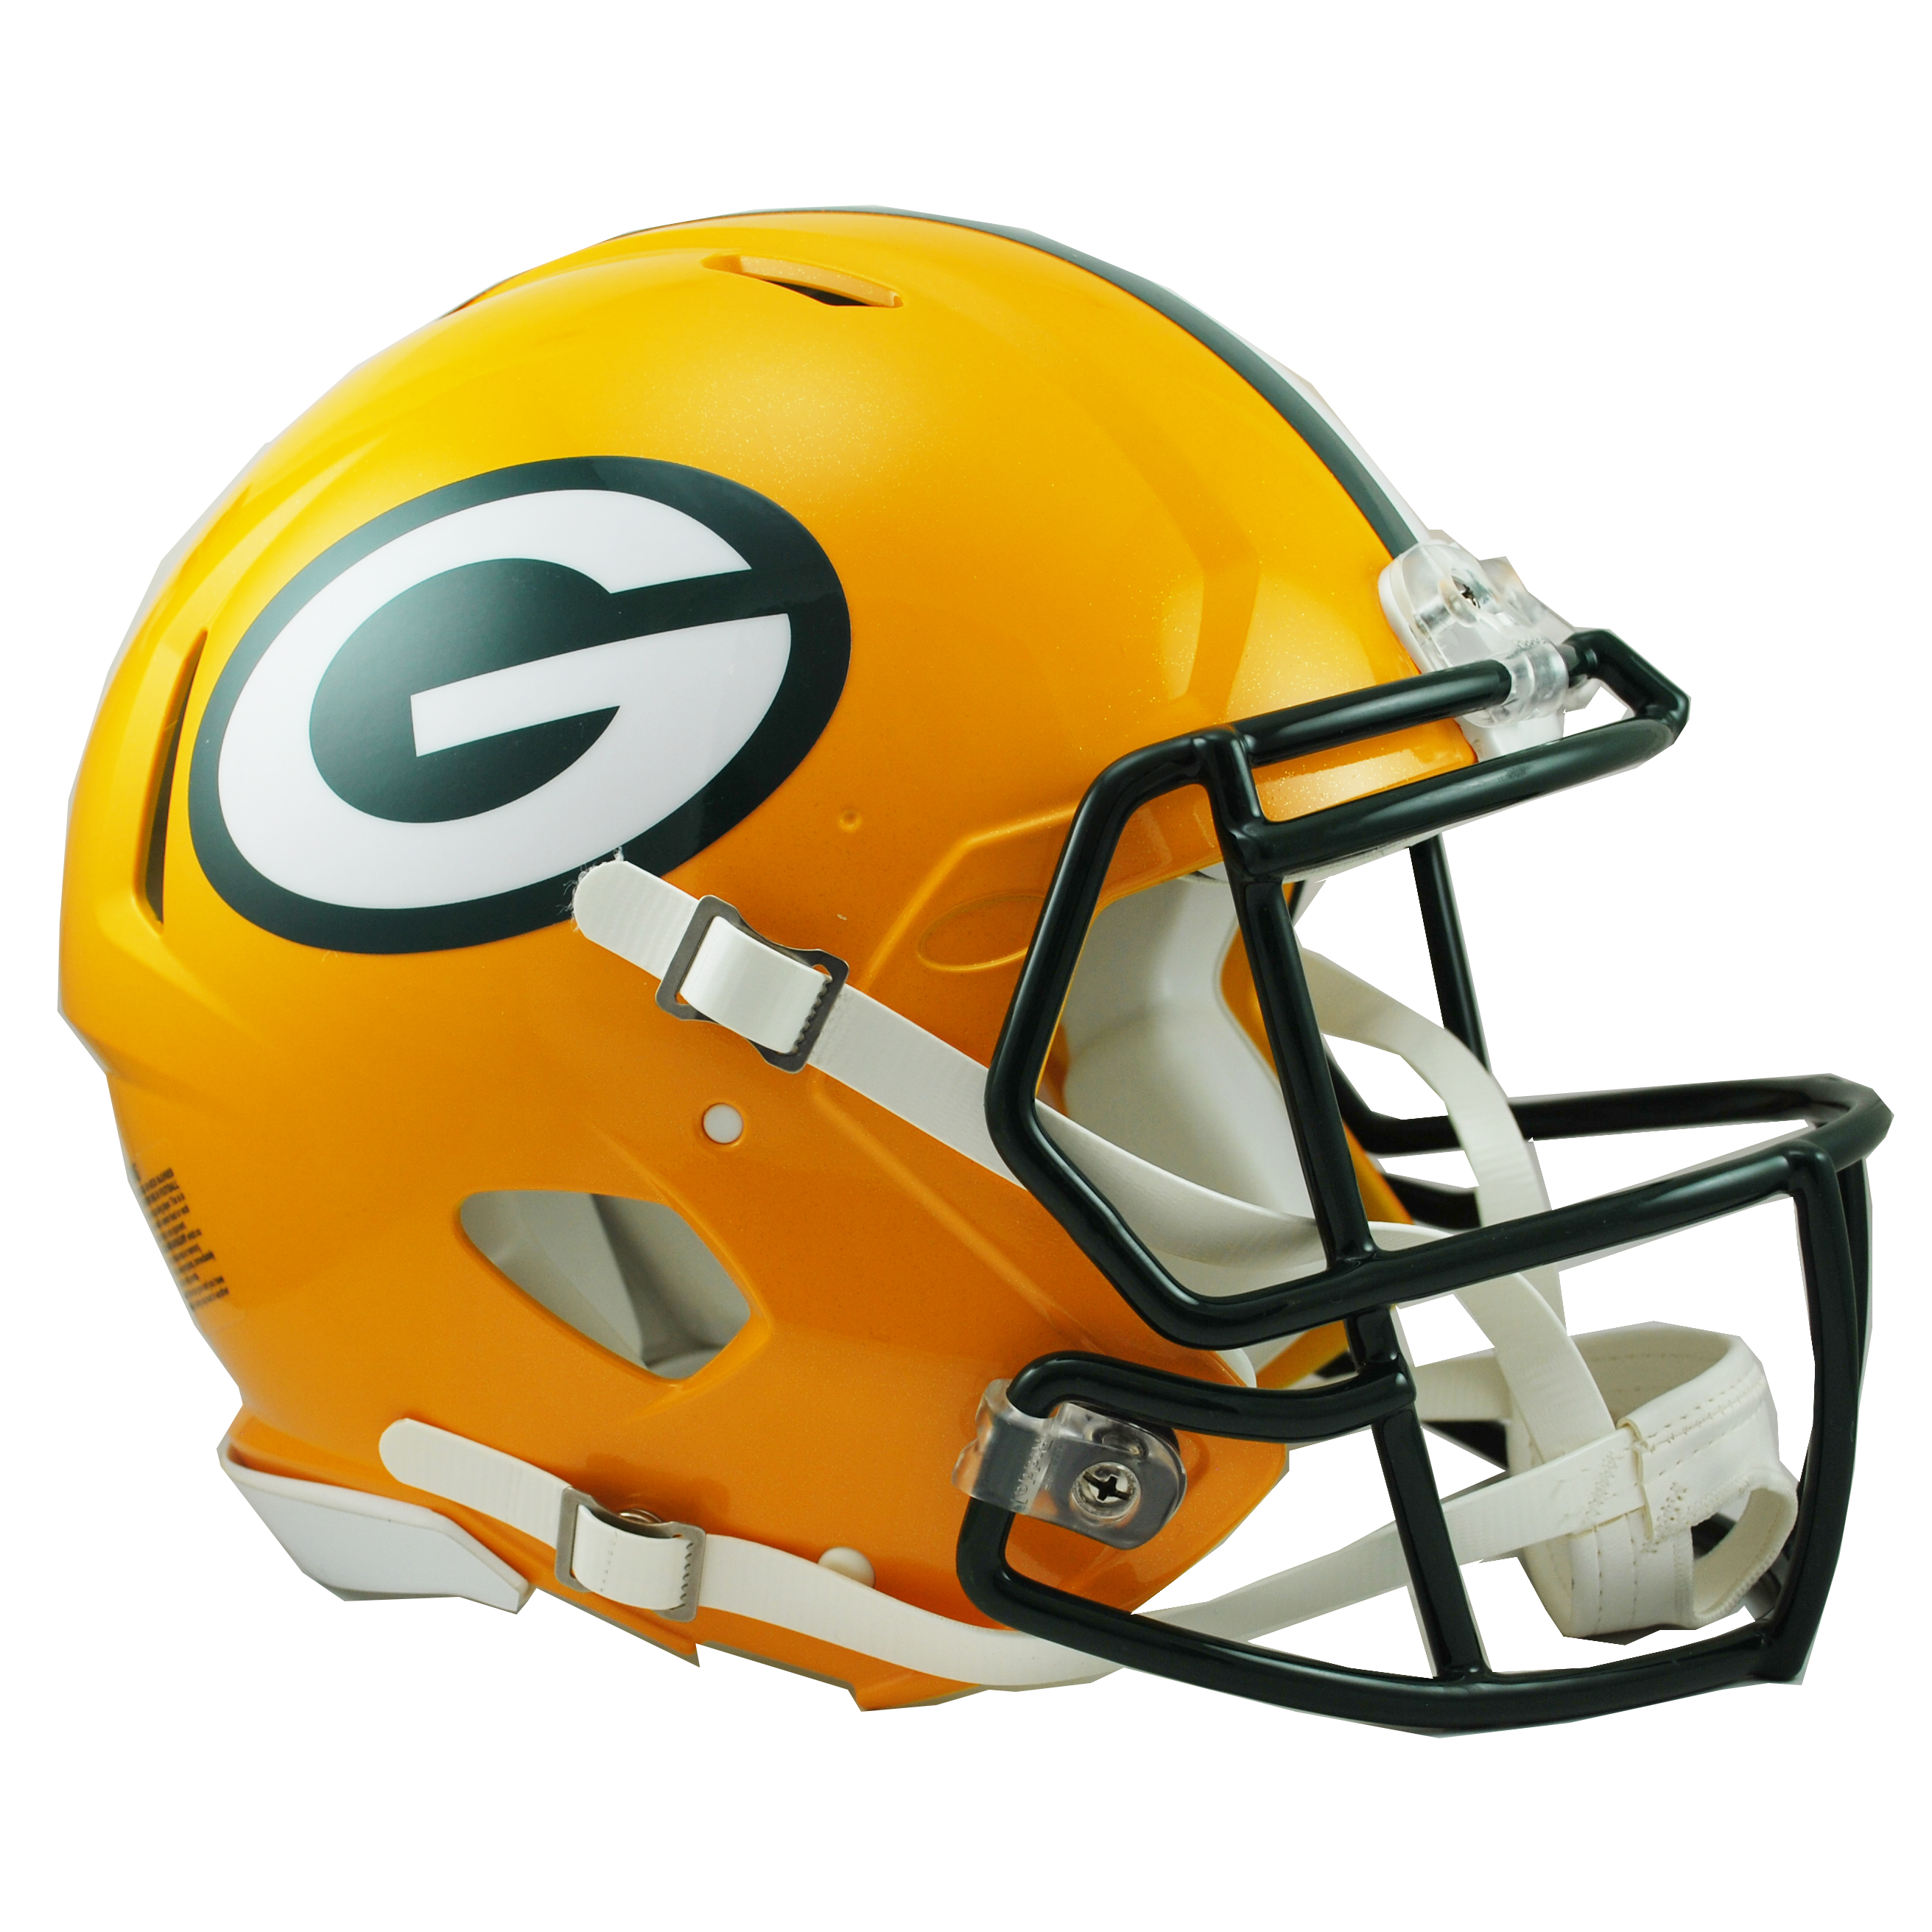 Green Bay Packers Revolution Speed Authentic Helmet Green Bay Packers Helmet Football Helmets Packers Football